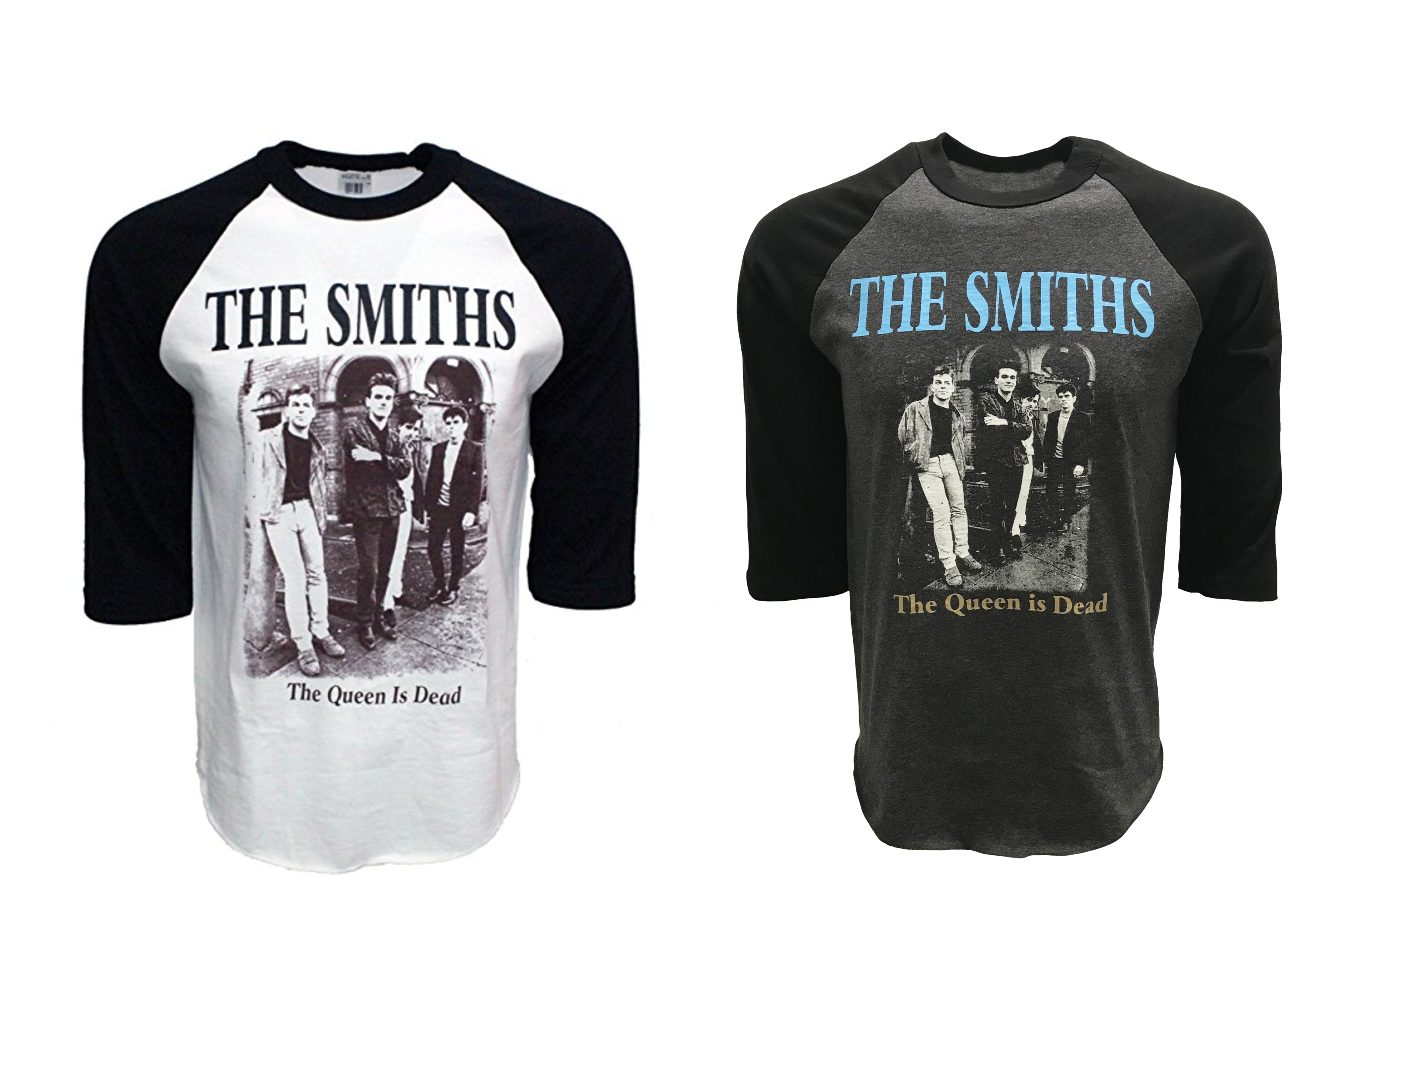 a3fb1c60 The Smiths Band The Queen is Dead Raglan Baseball Tee - Red Zone Shop